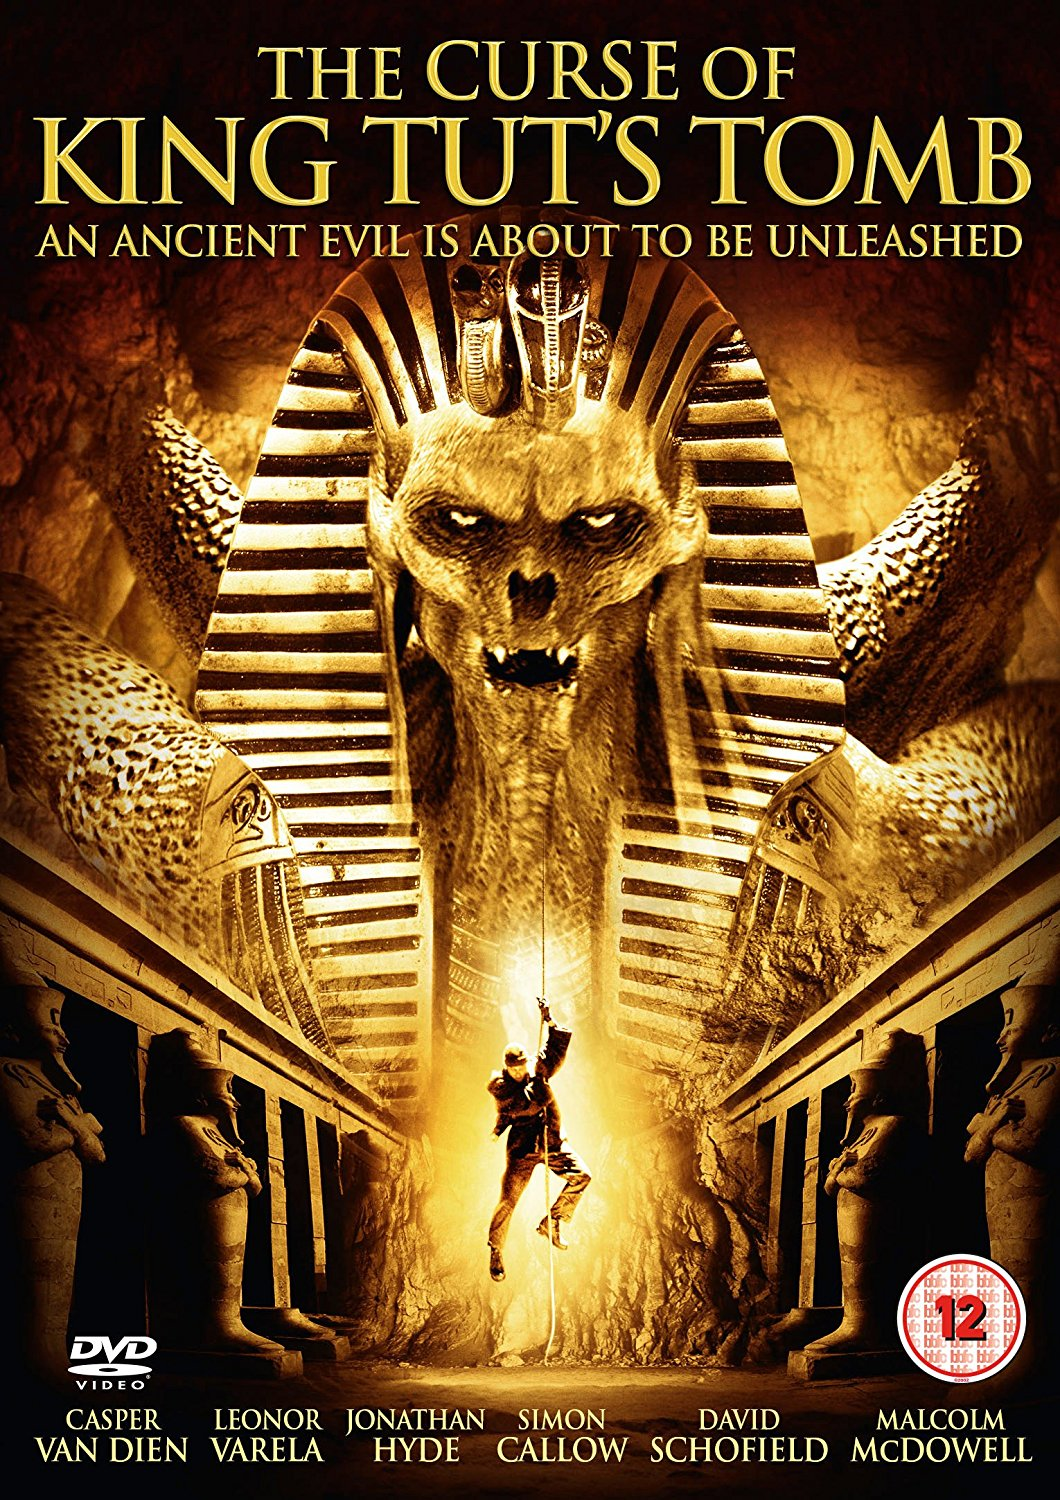 The Curse Of King Tut's Tomb (DVD) (C-12) 5060352300413